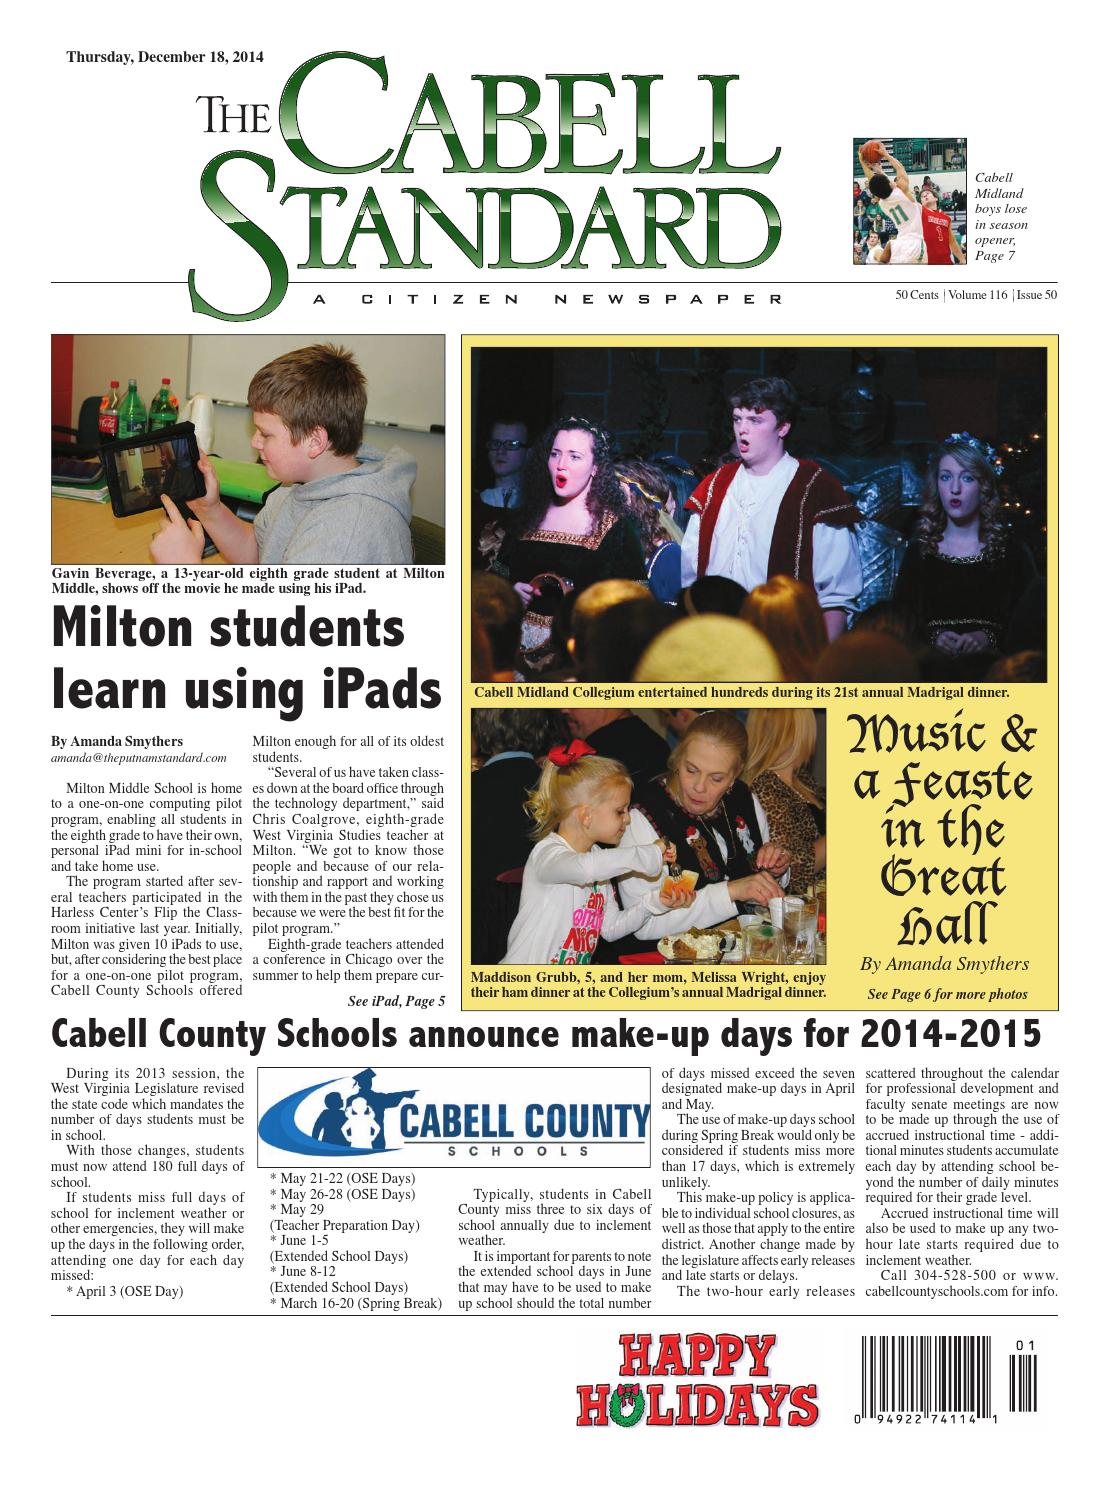 The Cabell Standard, Dec  18, 2014 by PC Newspapers - issuu